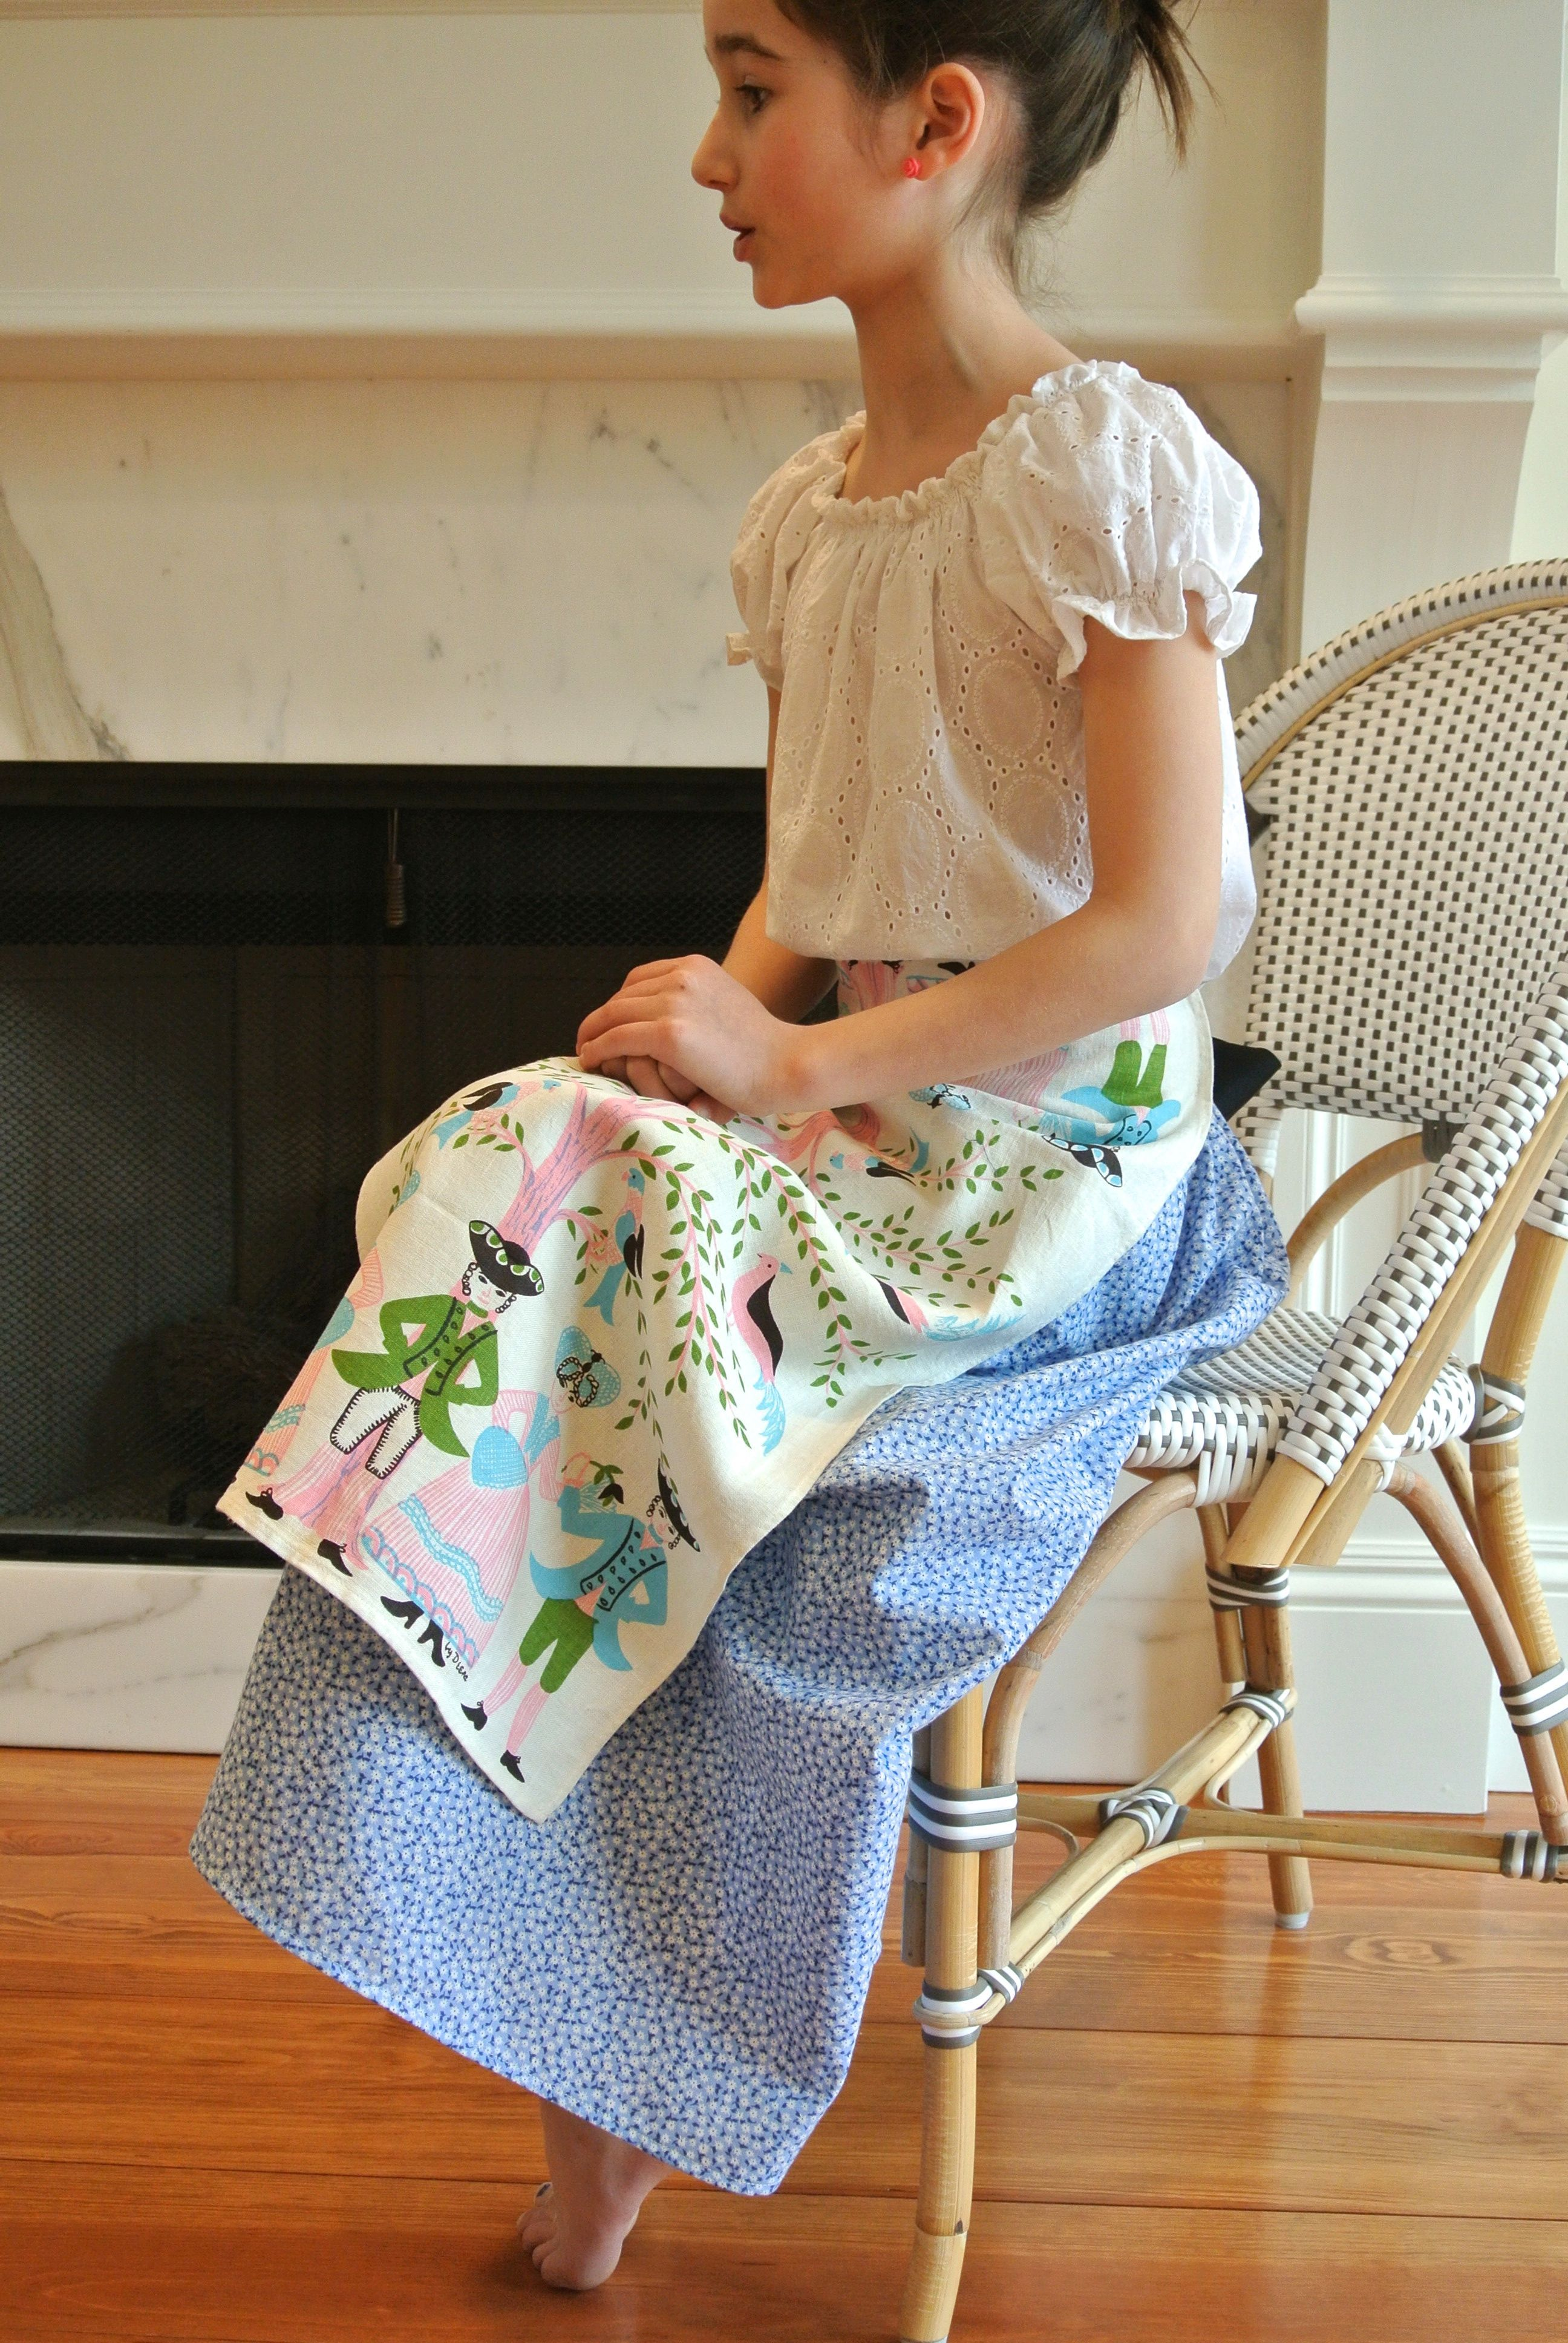 counterpane - Counterpane Craft Journal - DIY Colonial American Costume  sc 1 st  Pinterest & counterpane - Counterpane Craft Journal - DIY Colonial American ...